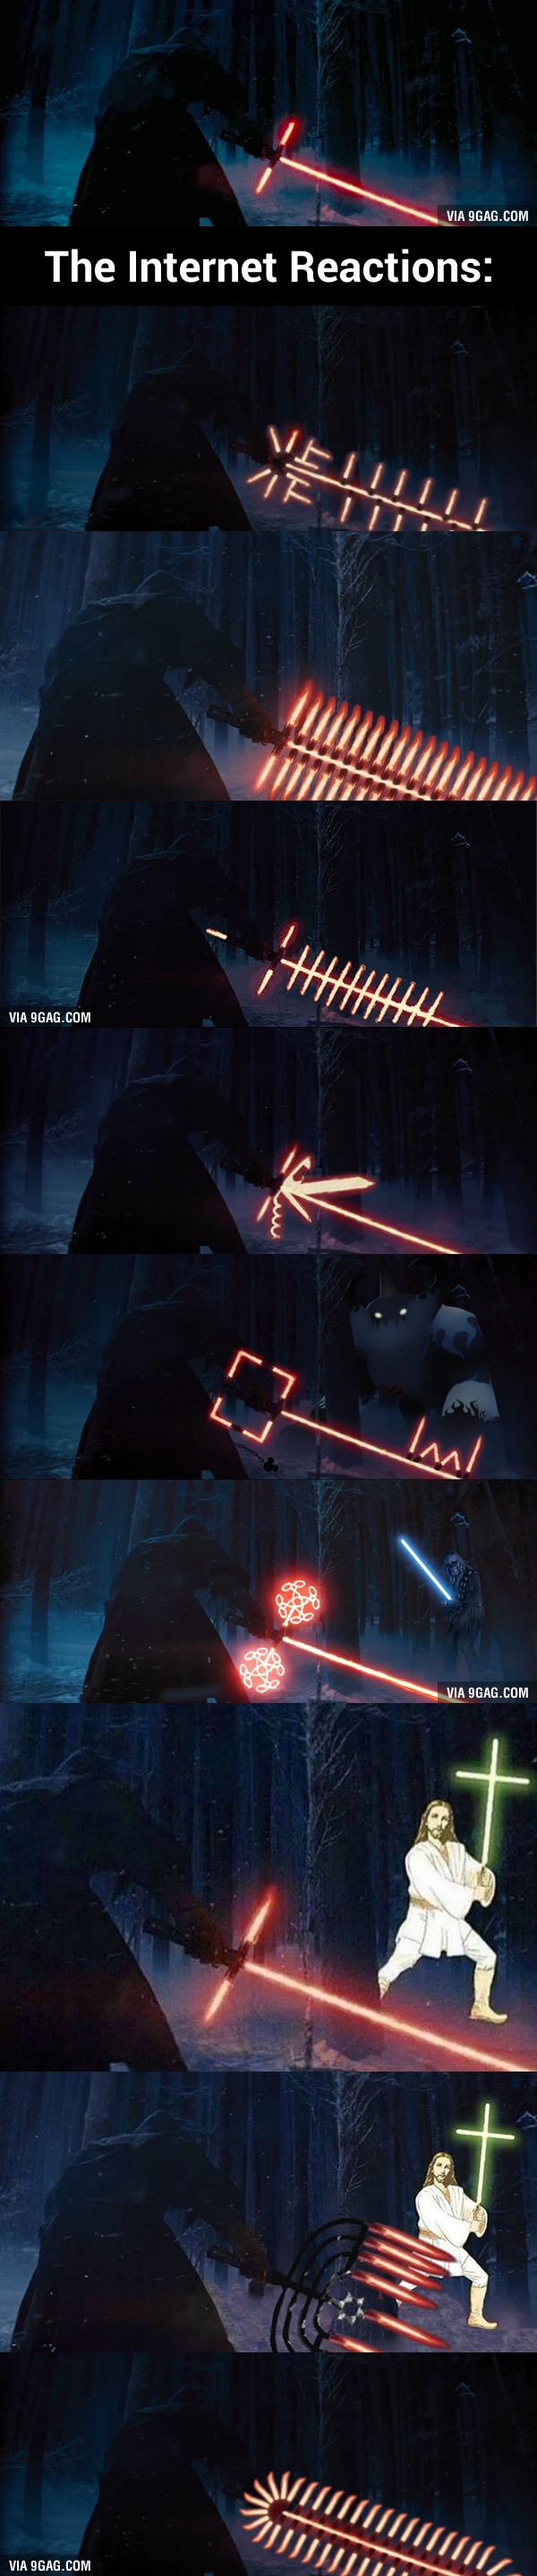 star-wars-force-awakens-lightsaber-meme